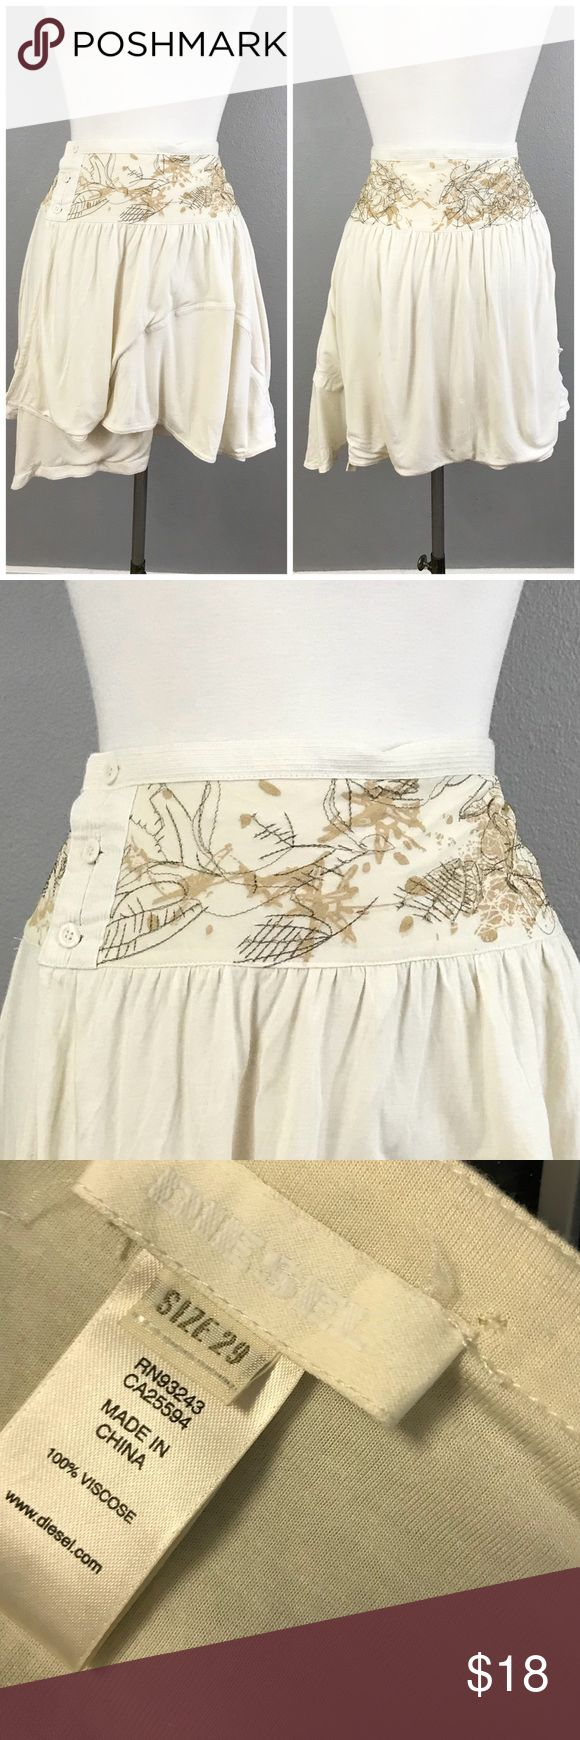 """Diesel Ivory Boho Wrap Asymmetrical Hem Mini Skirt Diesel Ivory Boho Wrap Asymmetrical Hem Mini Skirt. Size 29. Thank you for looking at my listing. Please feel free to comment with any questions (no trades/modeling).  •Waist: 32"""" •Length: 21"""" •Condition:  VGUC, no holes or stains.   25% off all Bundles or 3+ items! Reasonable offers welcome.   BIN: LA Diesel Skirts Mini"""